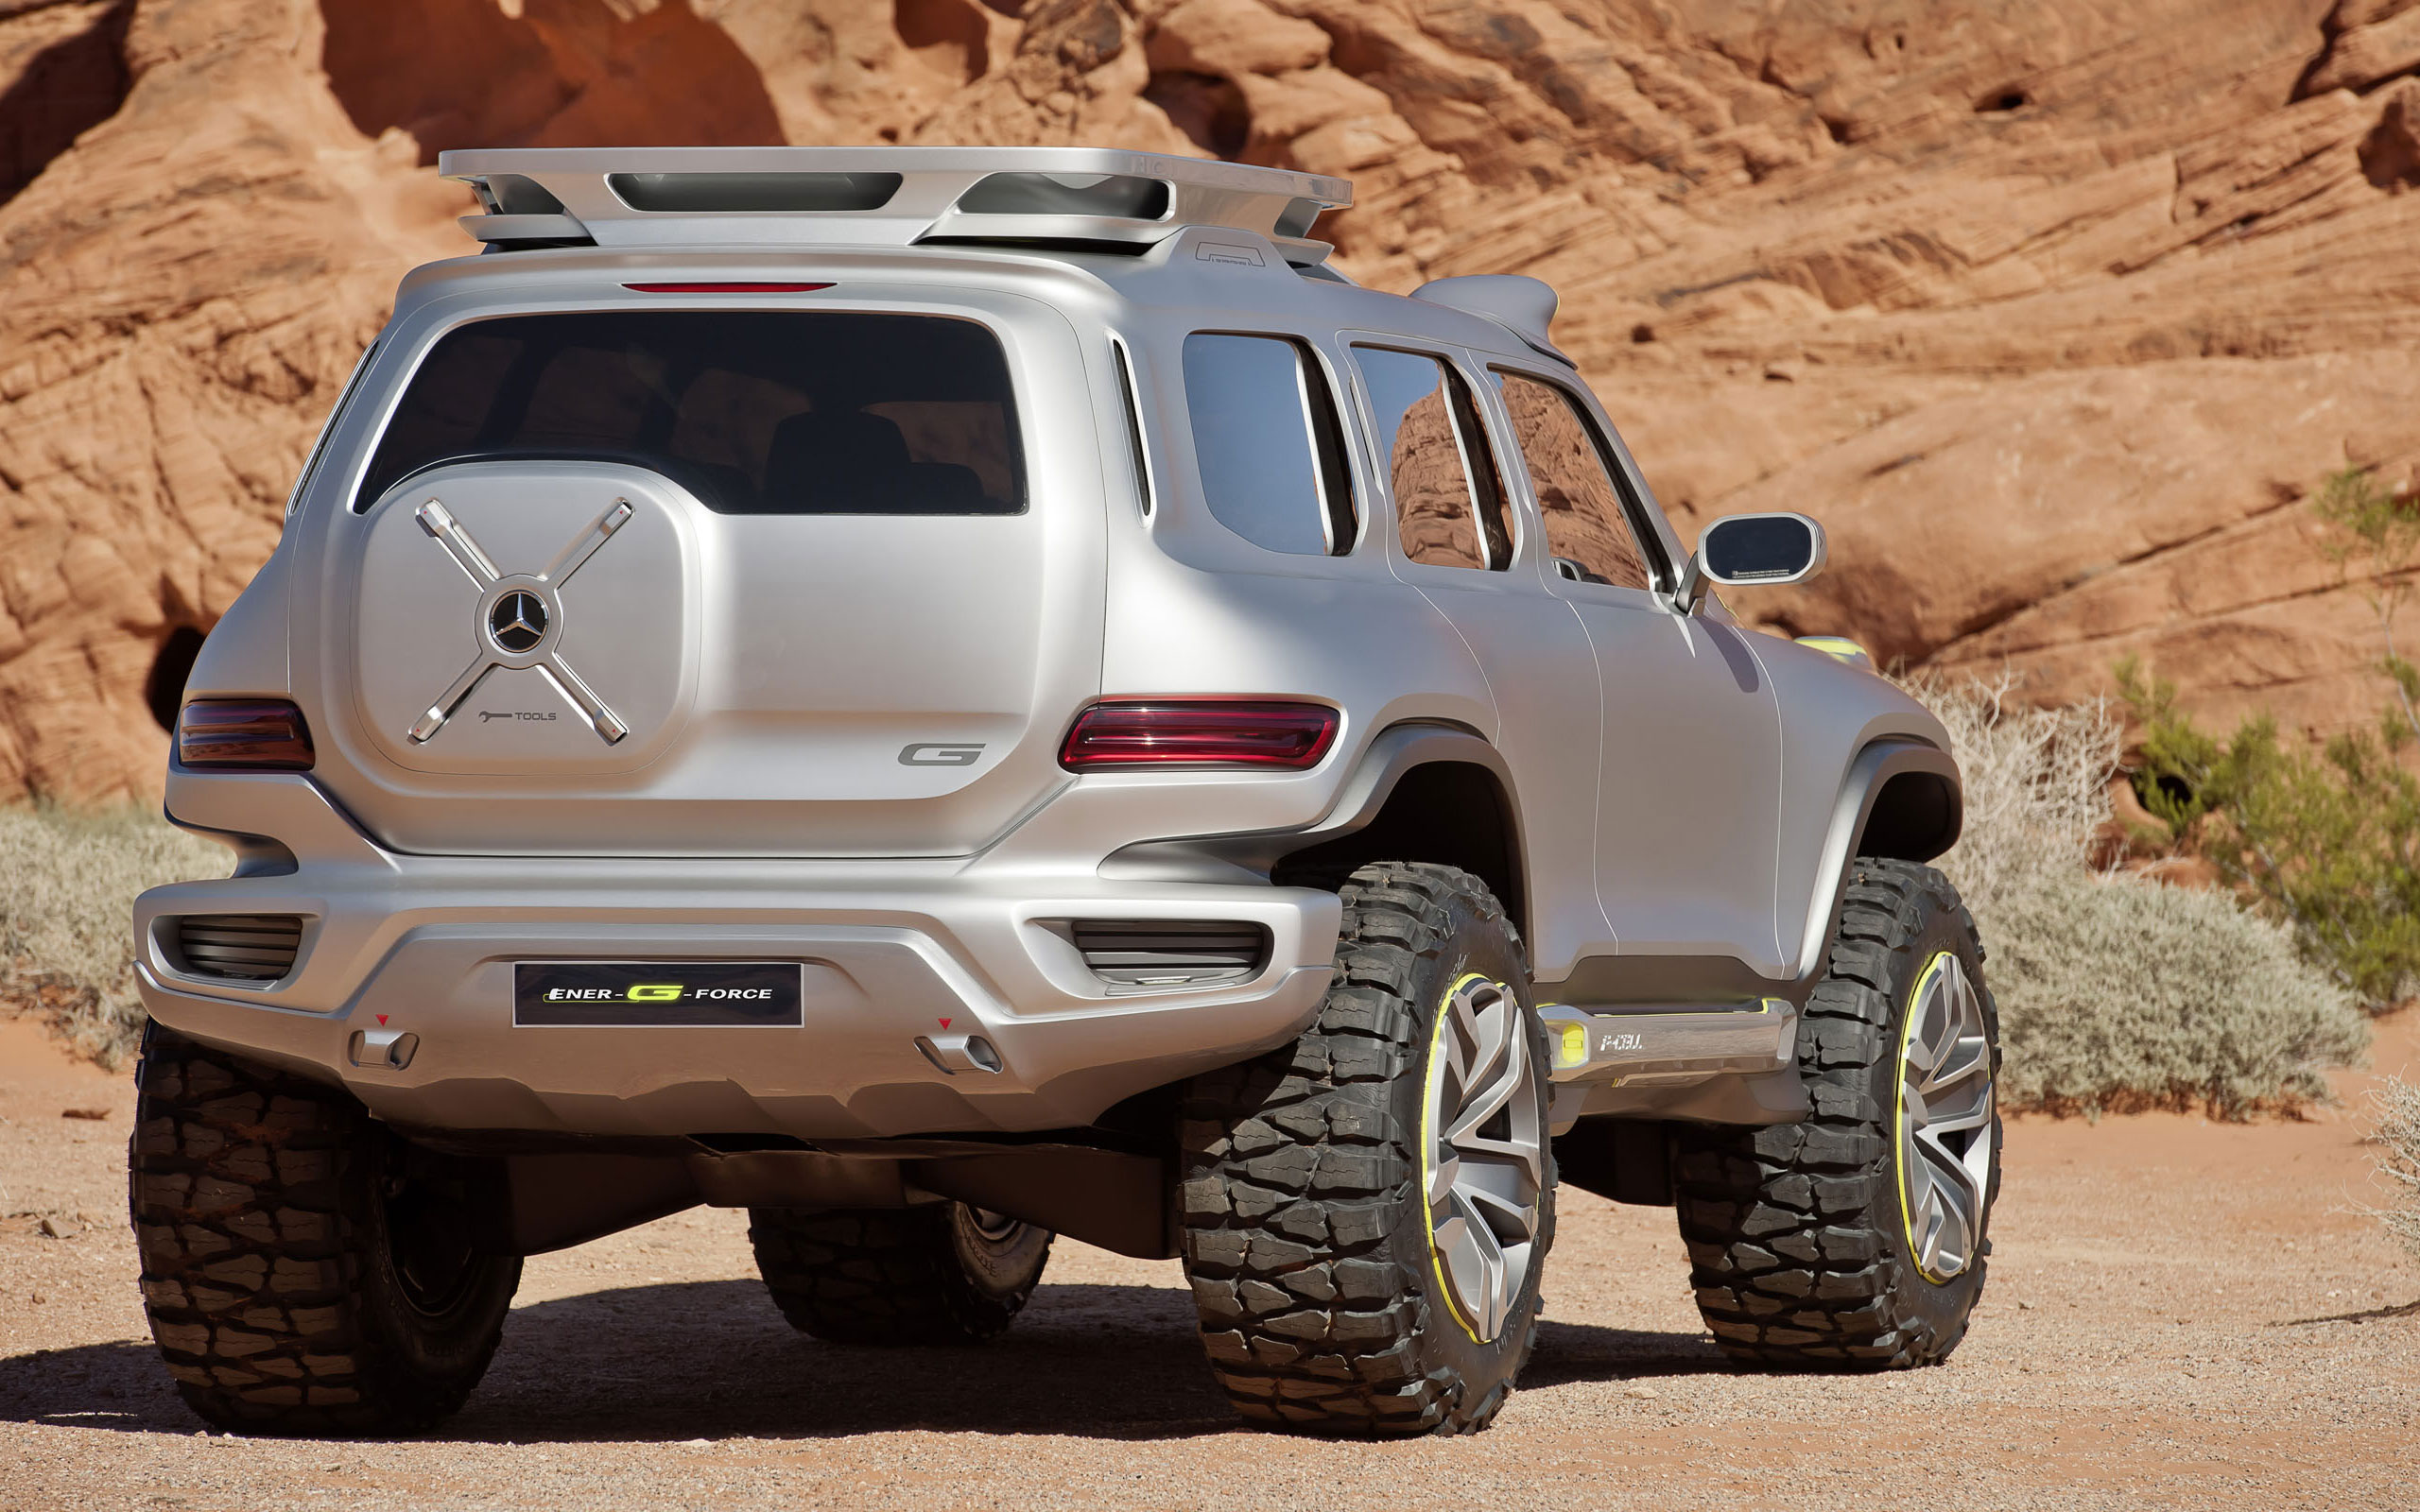 G Class Environmentally Friendly Suv Future Vehicle Mercedes Benz